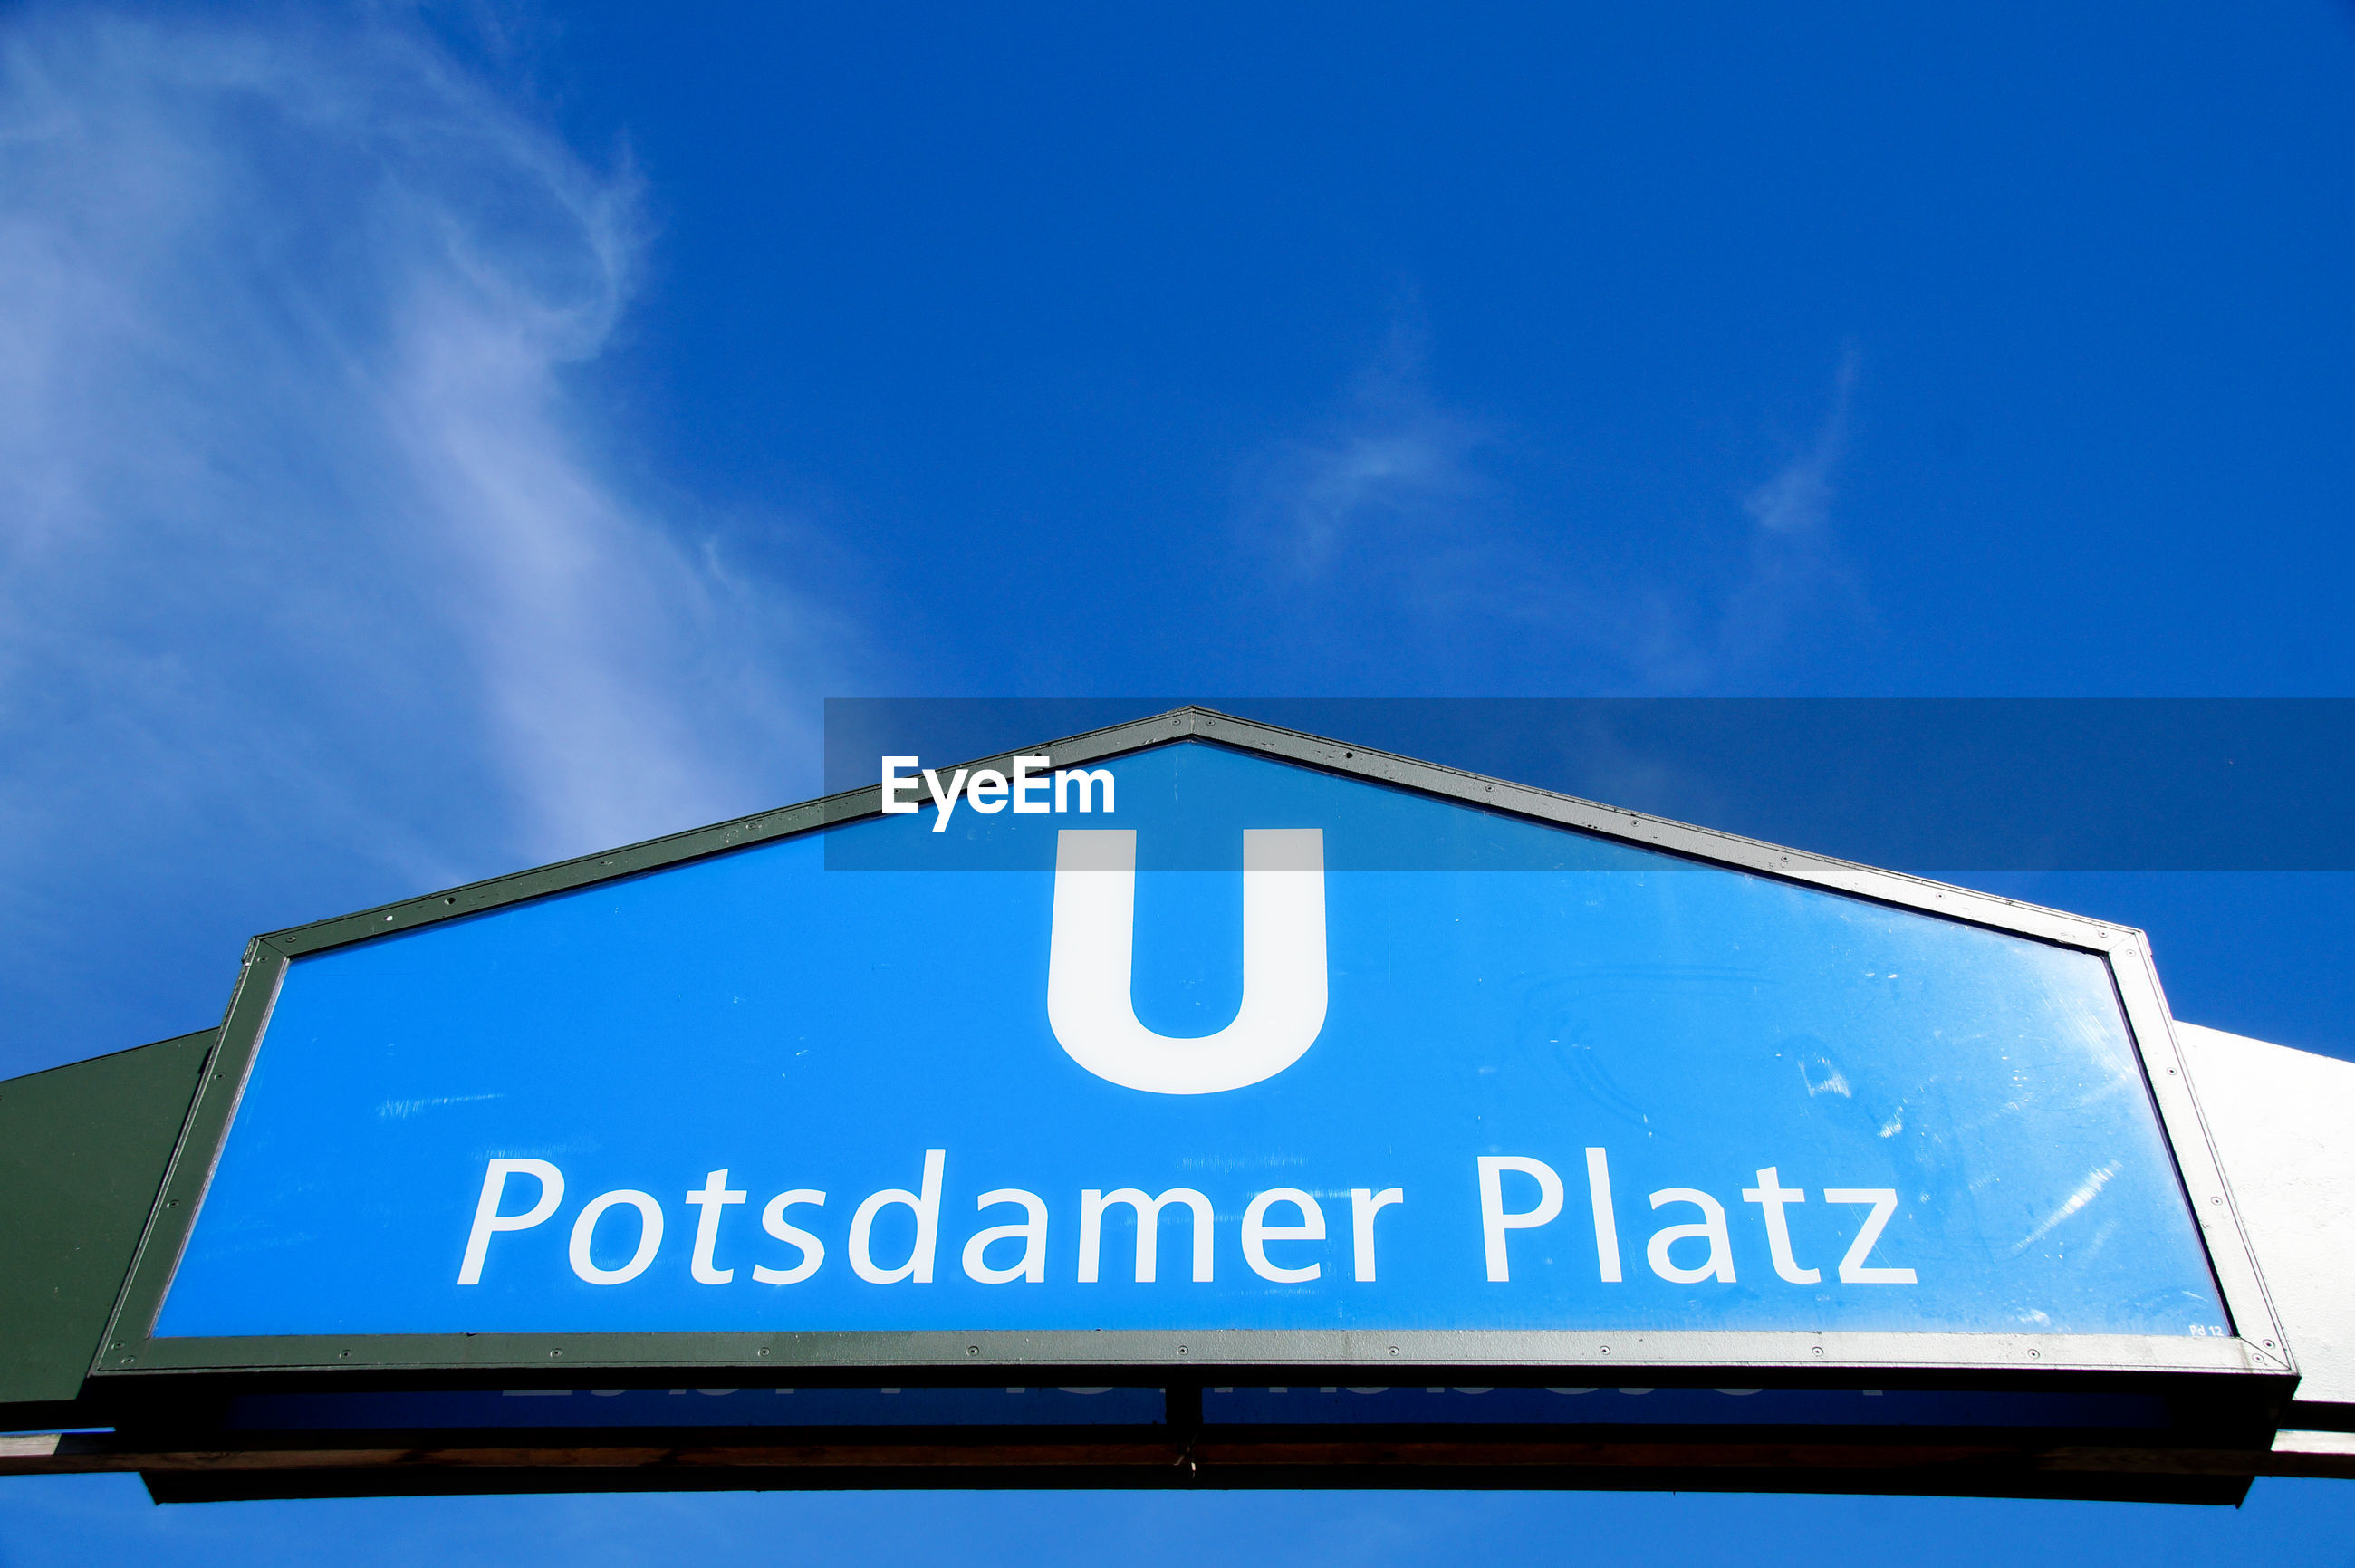 Low angle view of potsdamer platz sign against blue sky